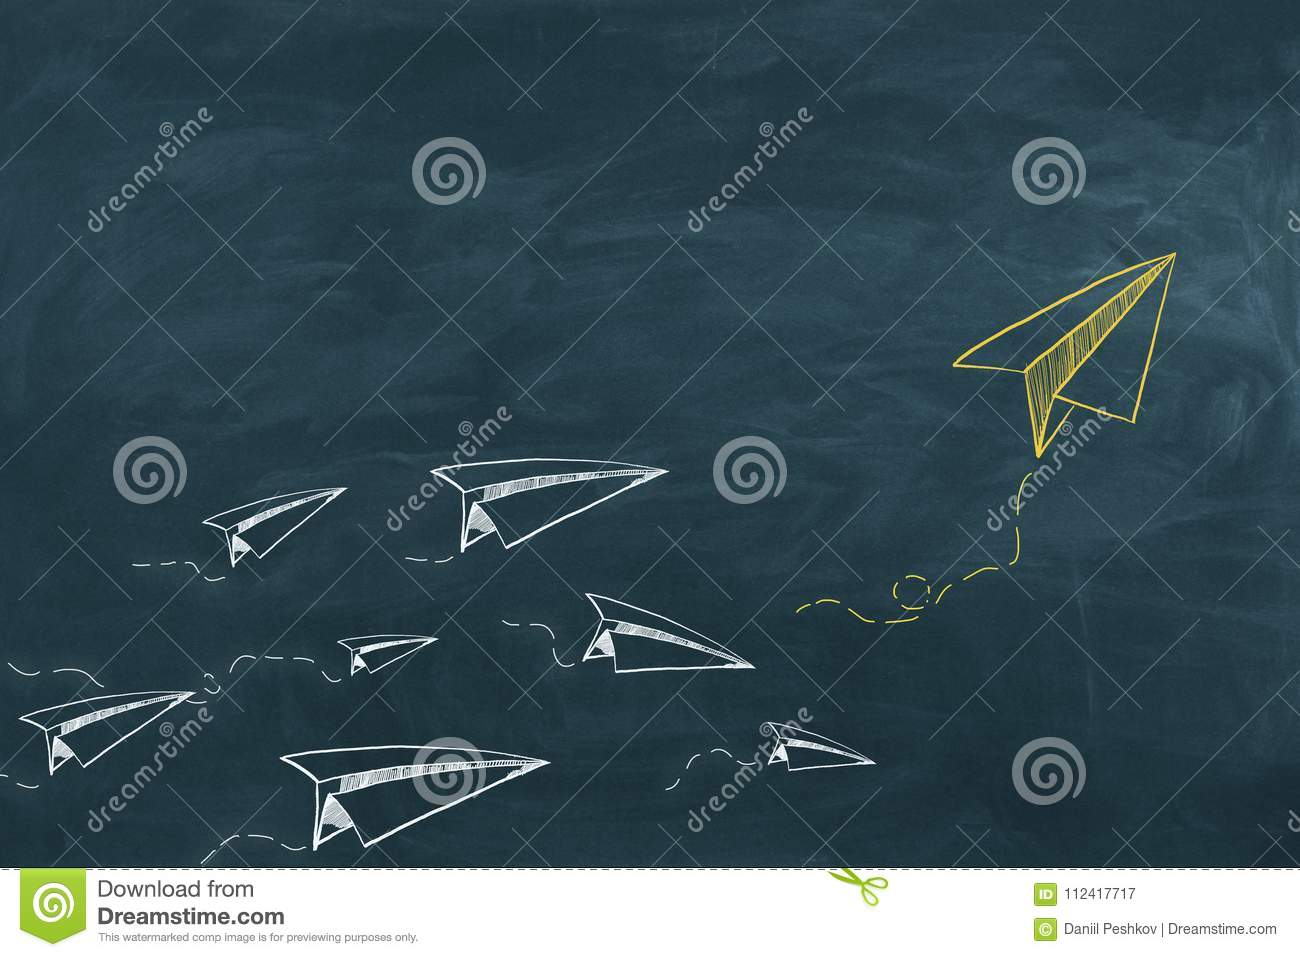 Leadership And Startup Background Stock Illustration Paper Airplane Diagrams Chalkboard With Drawn Planes Concept